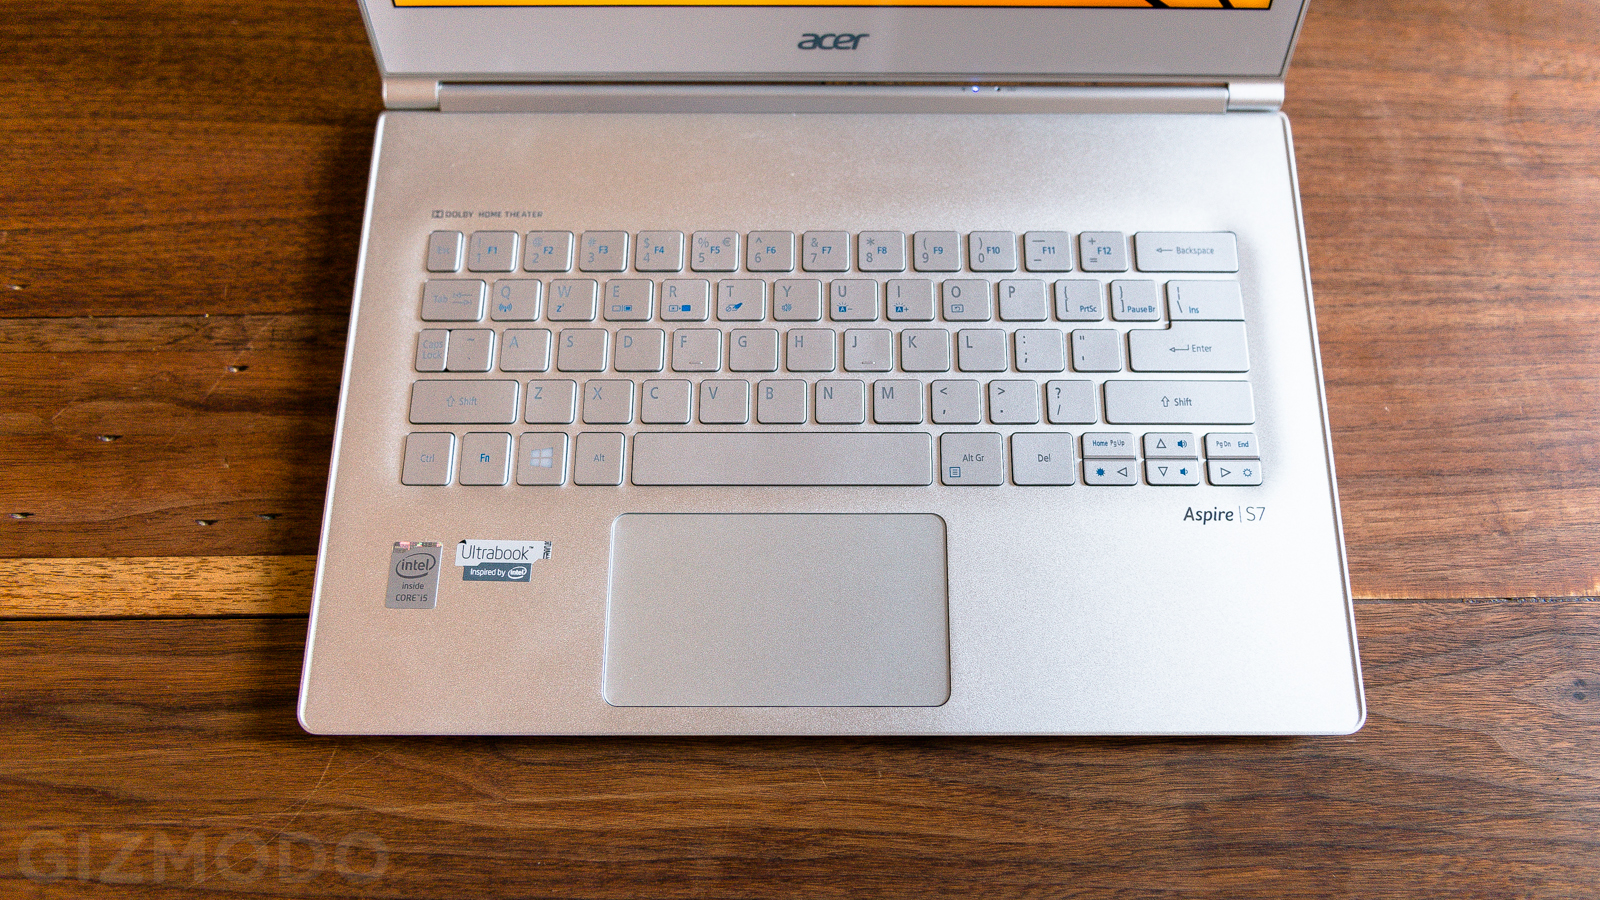 Acer Aspire S7 Review: The PC Revival Is Late, But It's Here